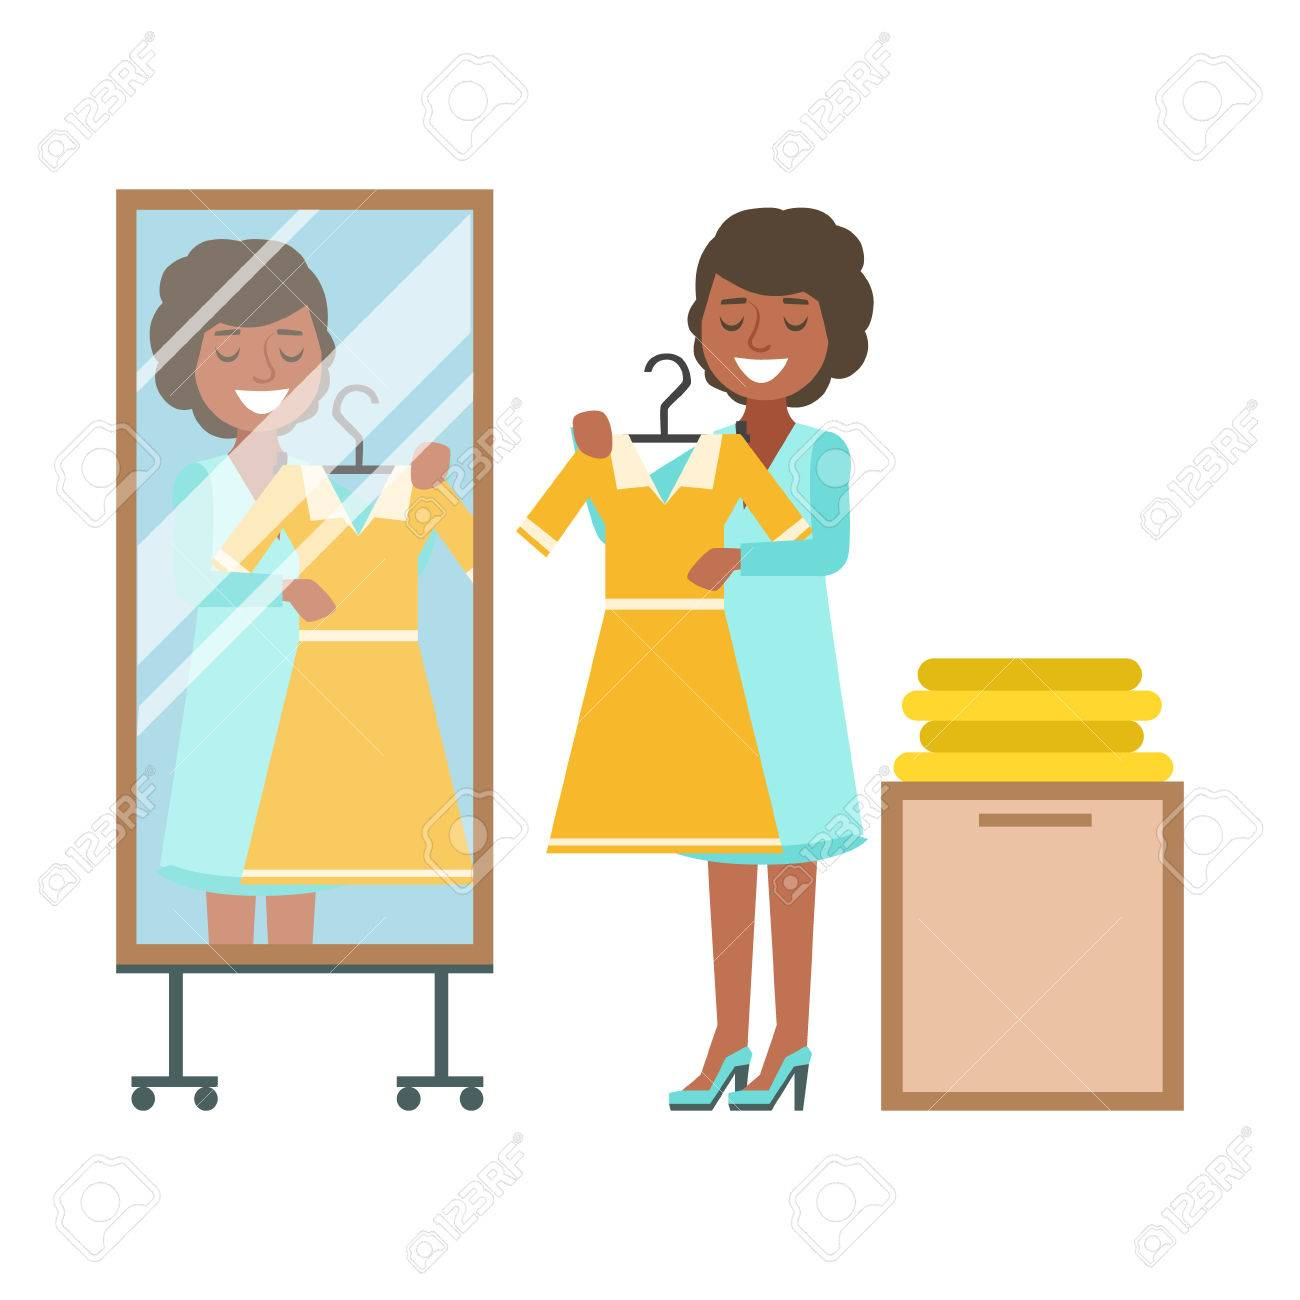 Woman Trying On Yellow Dress In Dressing Room Colorful Vector Illustration Stock